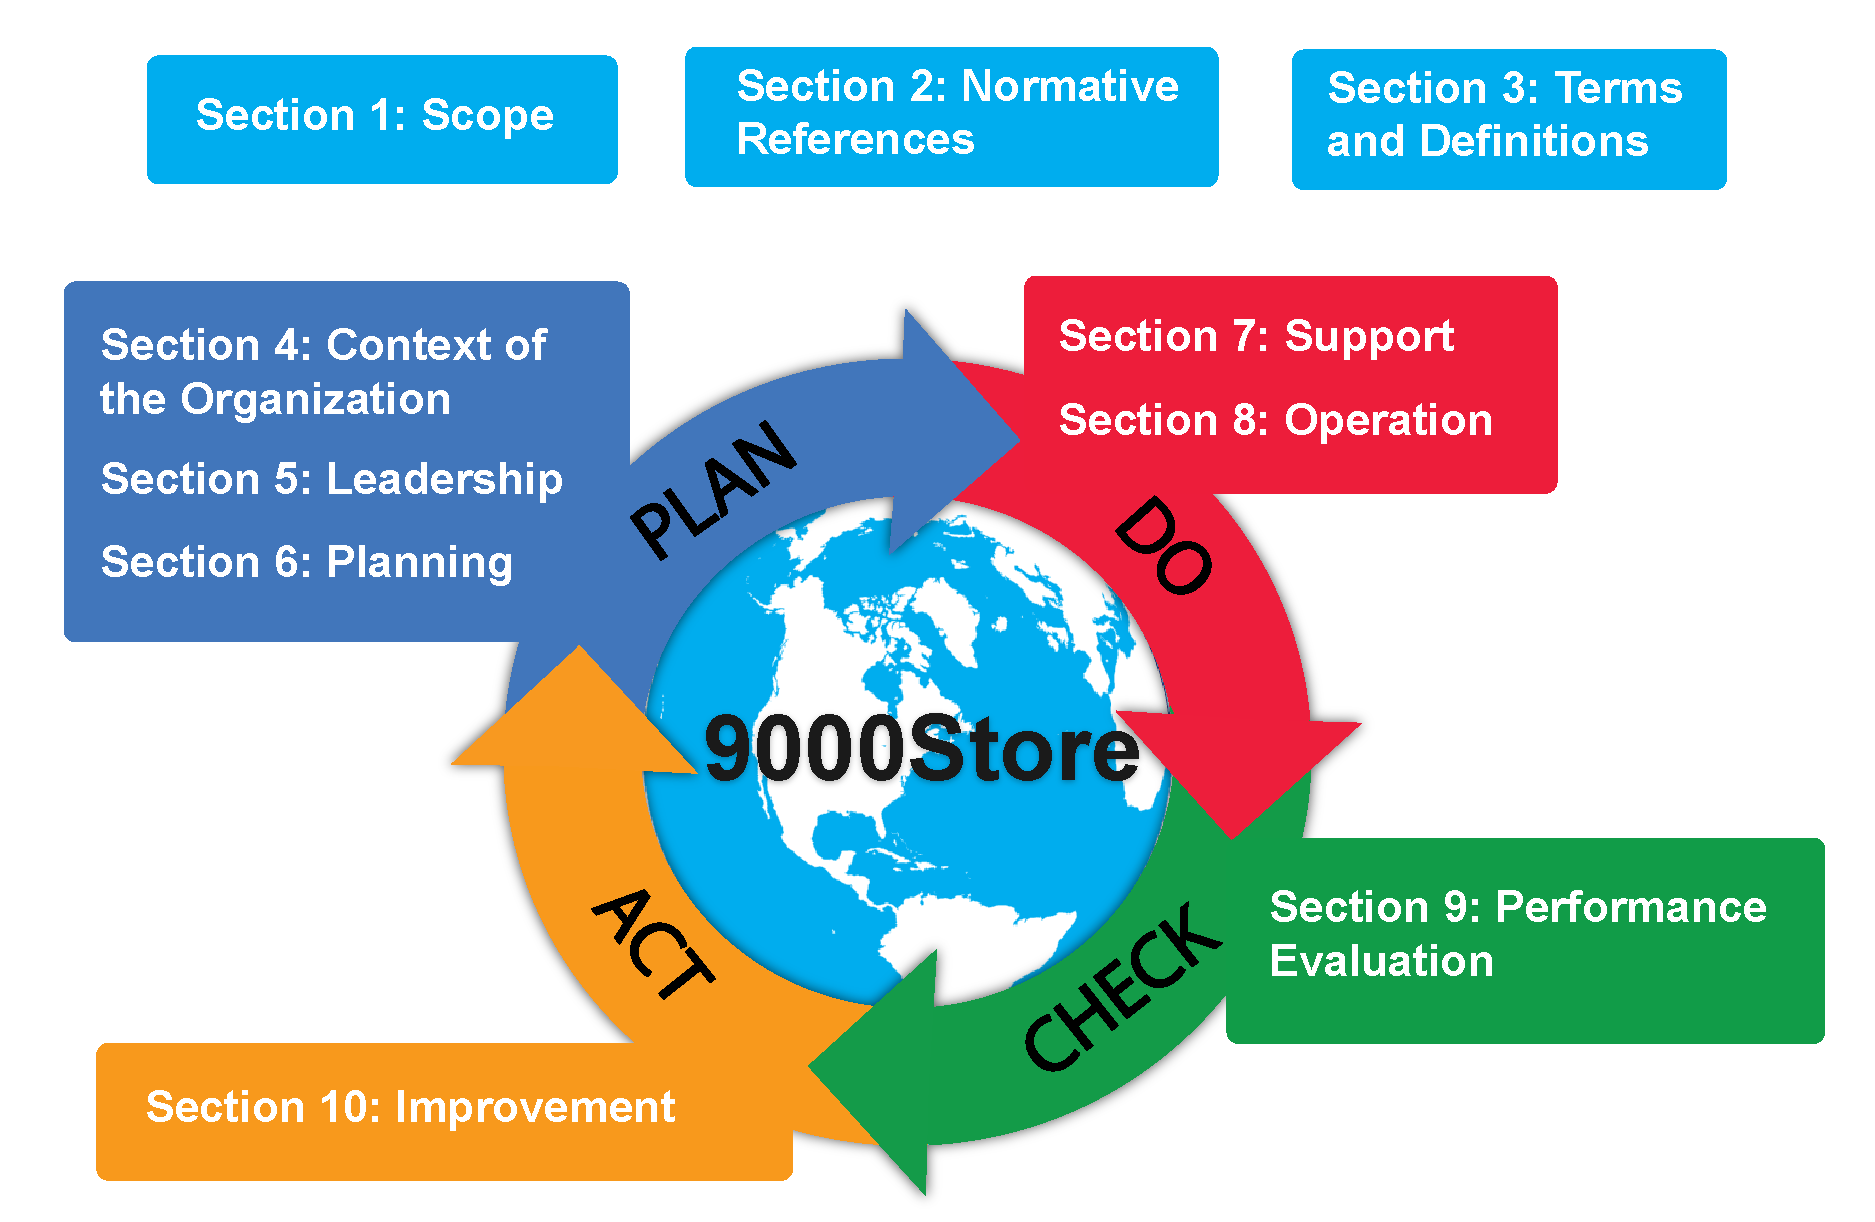 ISO 9001:2015 Requirements - Summary of Each Section